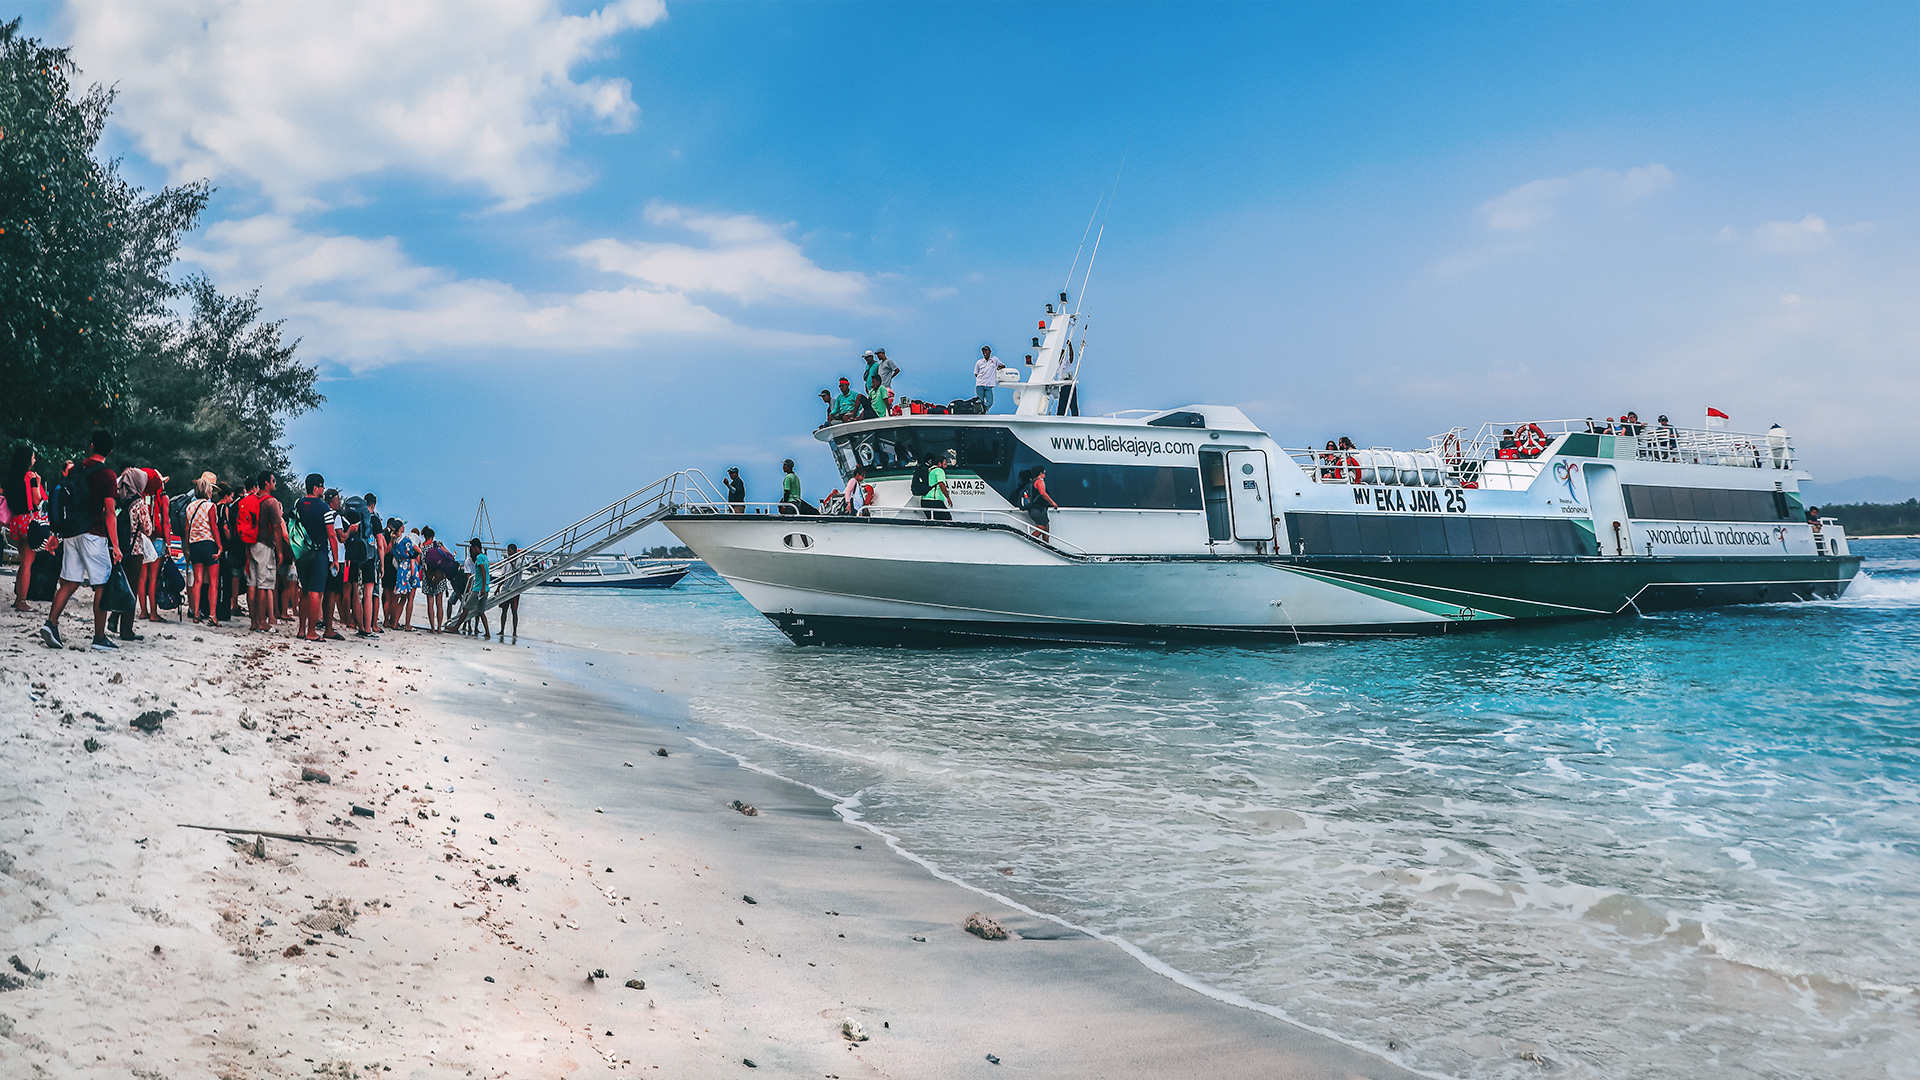 Fast boat from Gili to Bali. Is it safe to travel to the Gili Islands after the 2018 earthquakes?